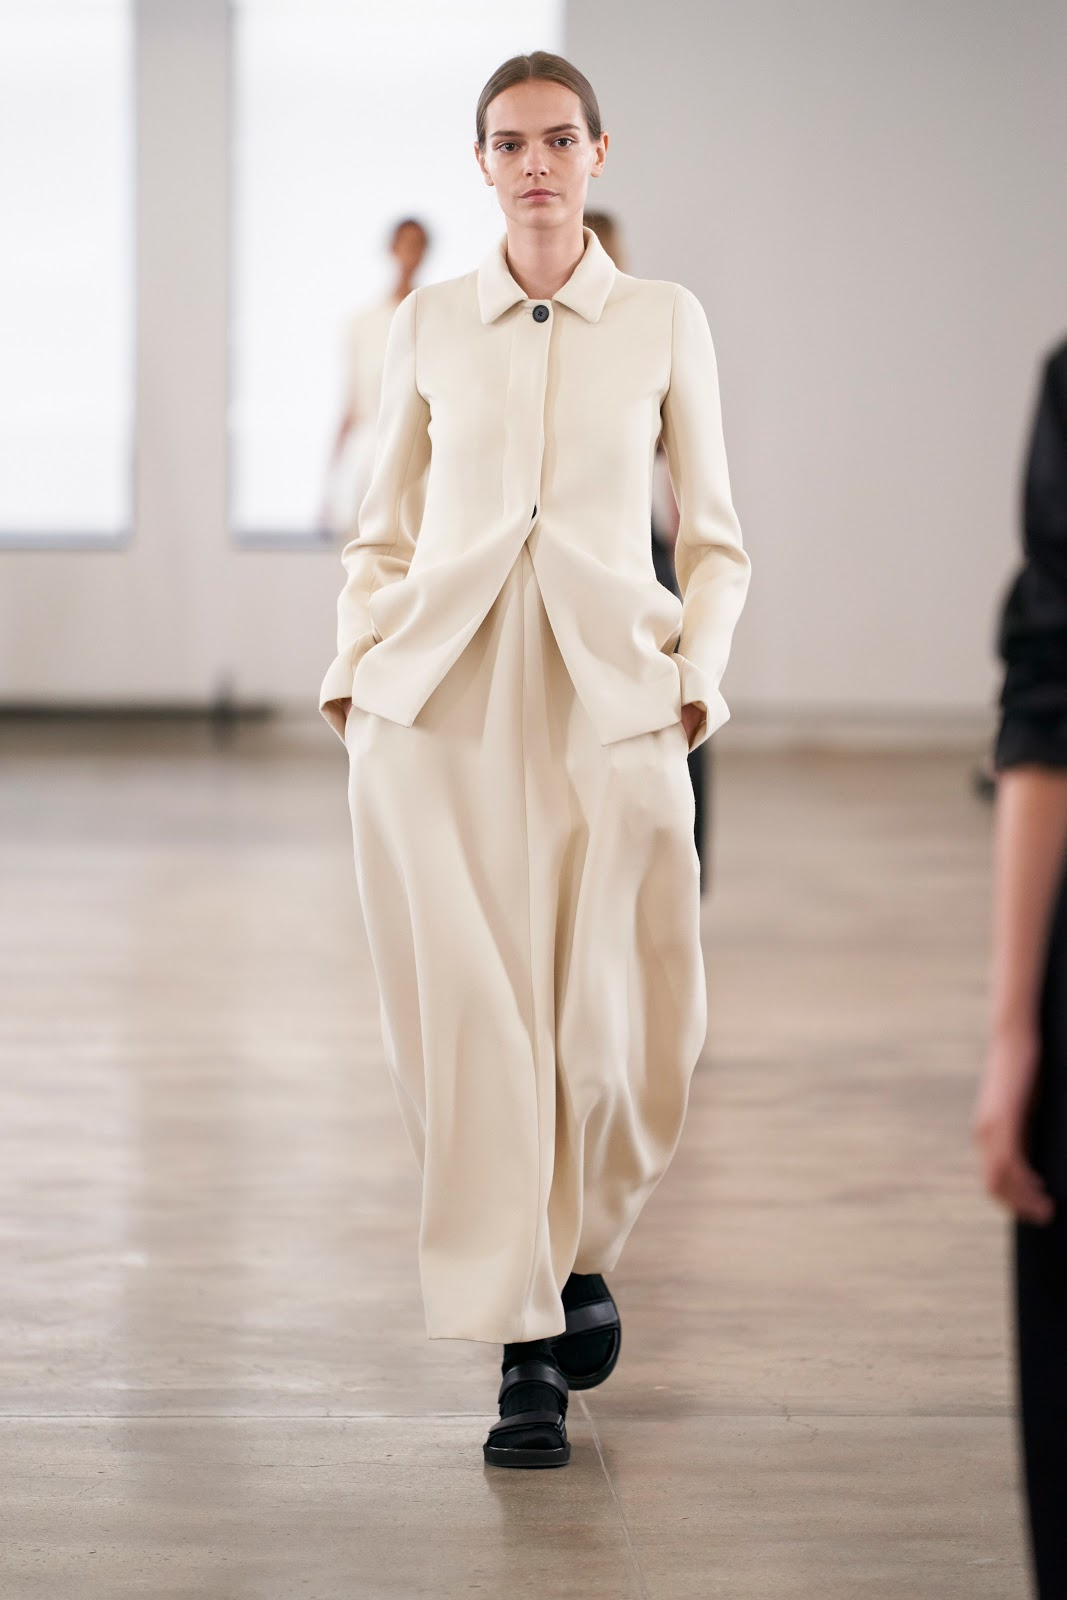 J Crew Spring 2020.The Row Spring Summer 2020 Ready To Wear Nyfw Cool Chic